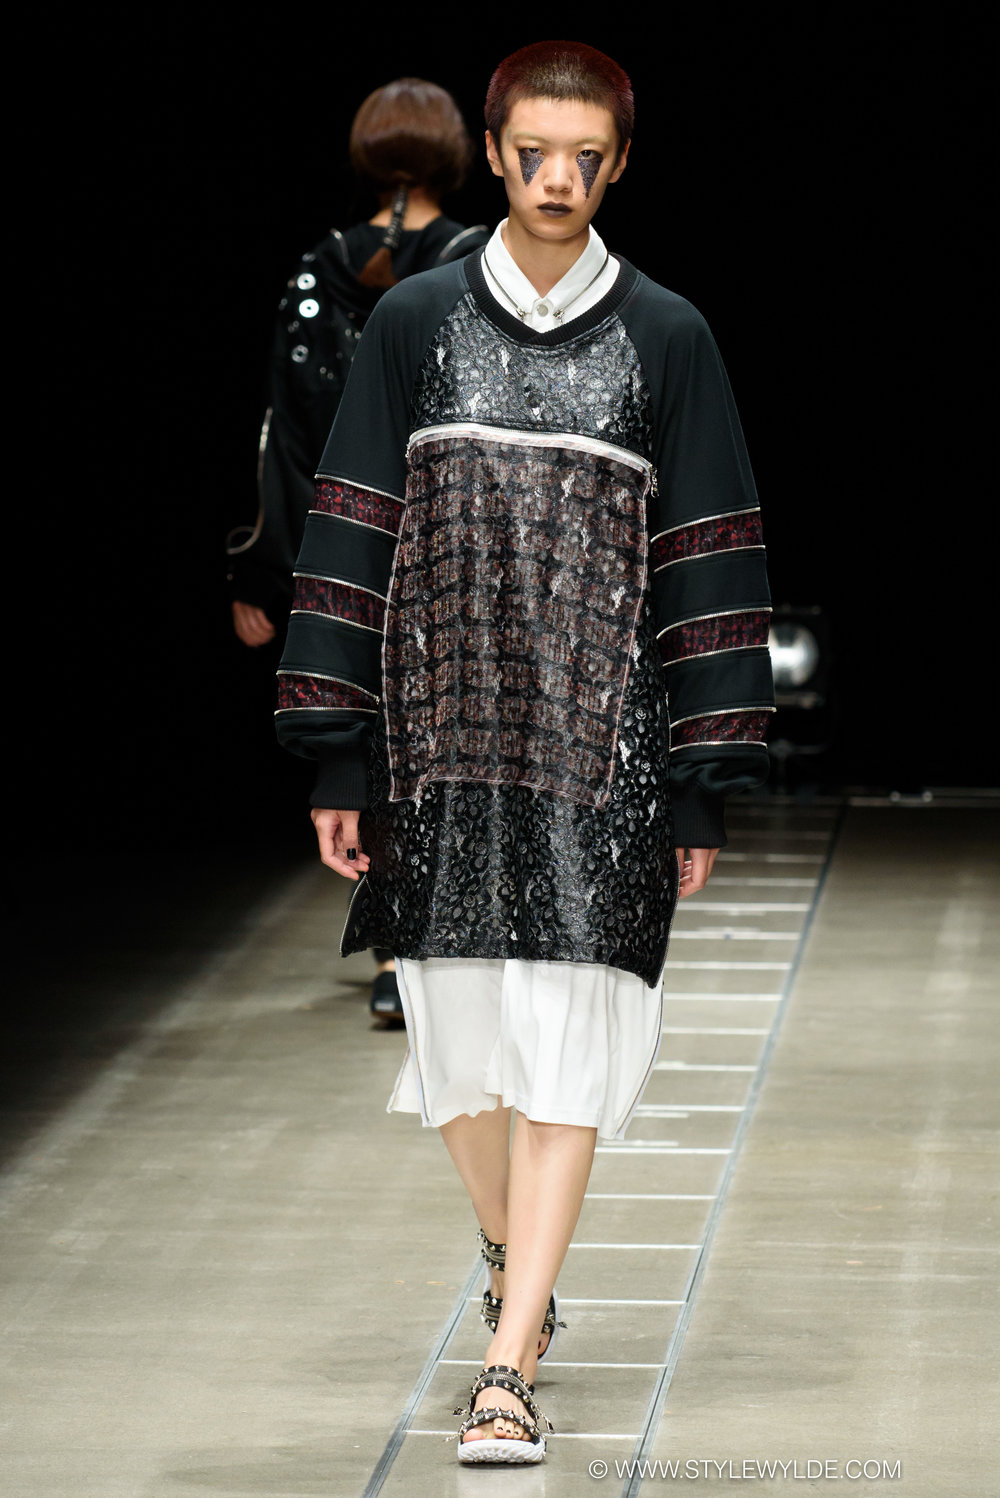 stylewylde_acuod_by_chanu_SS18_runway-23.jpg